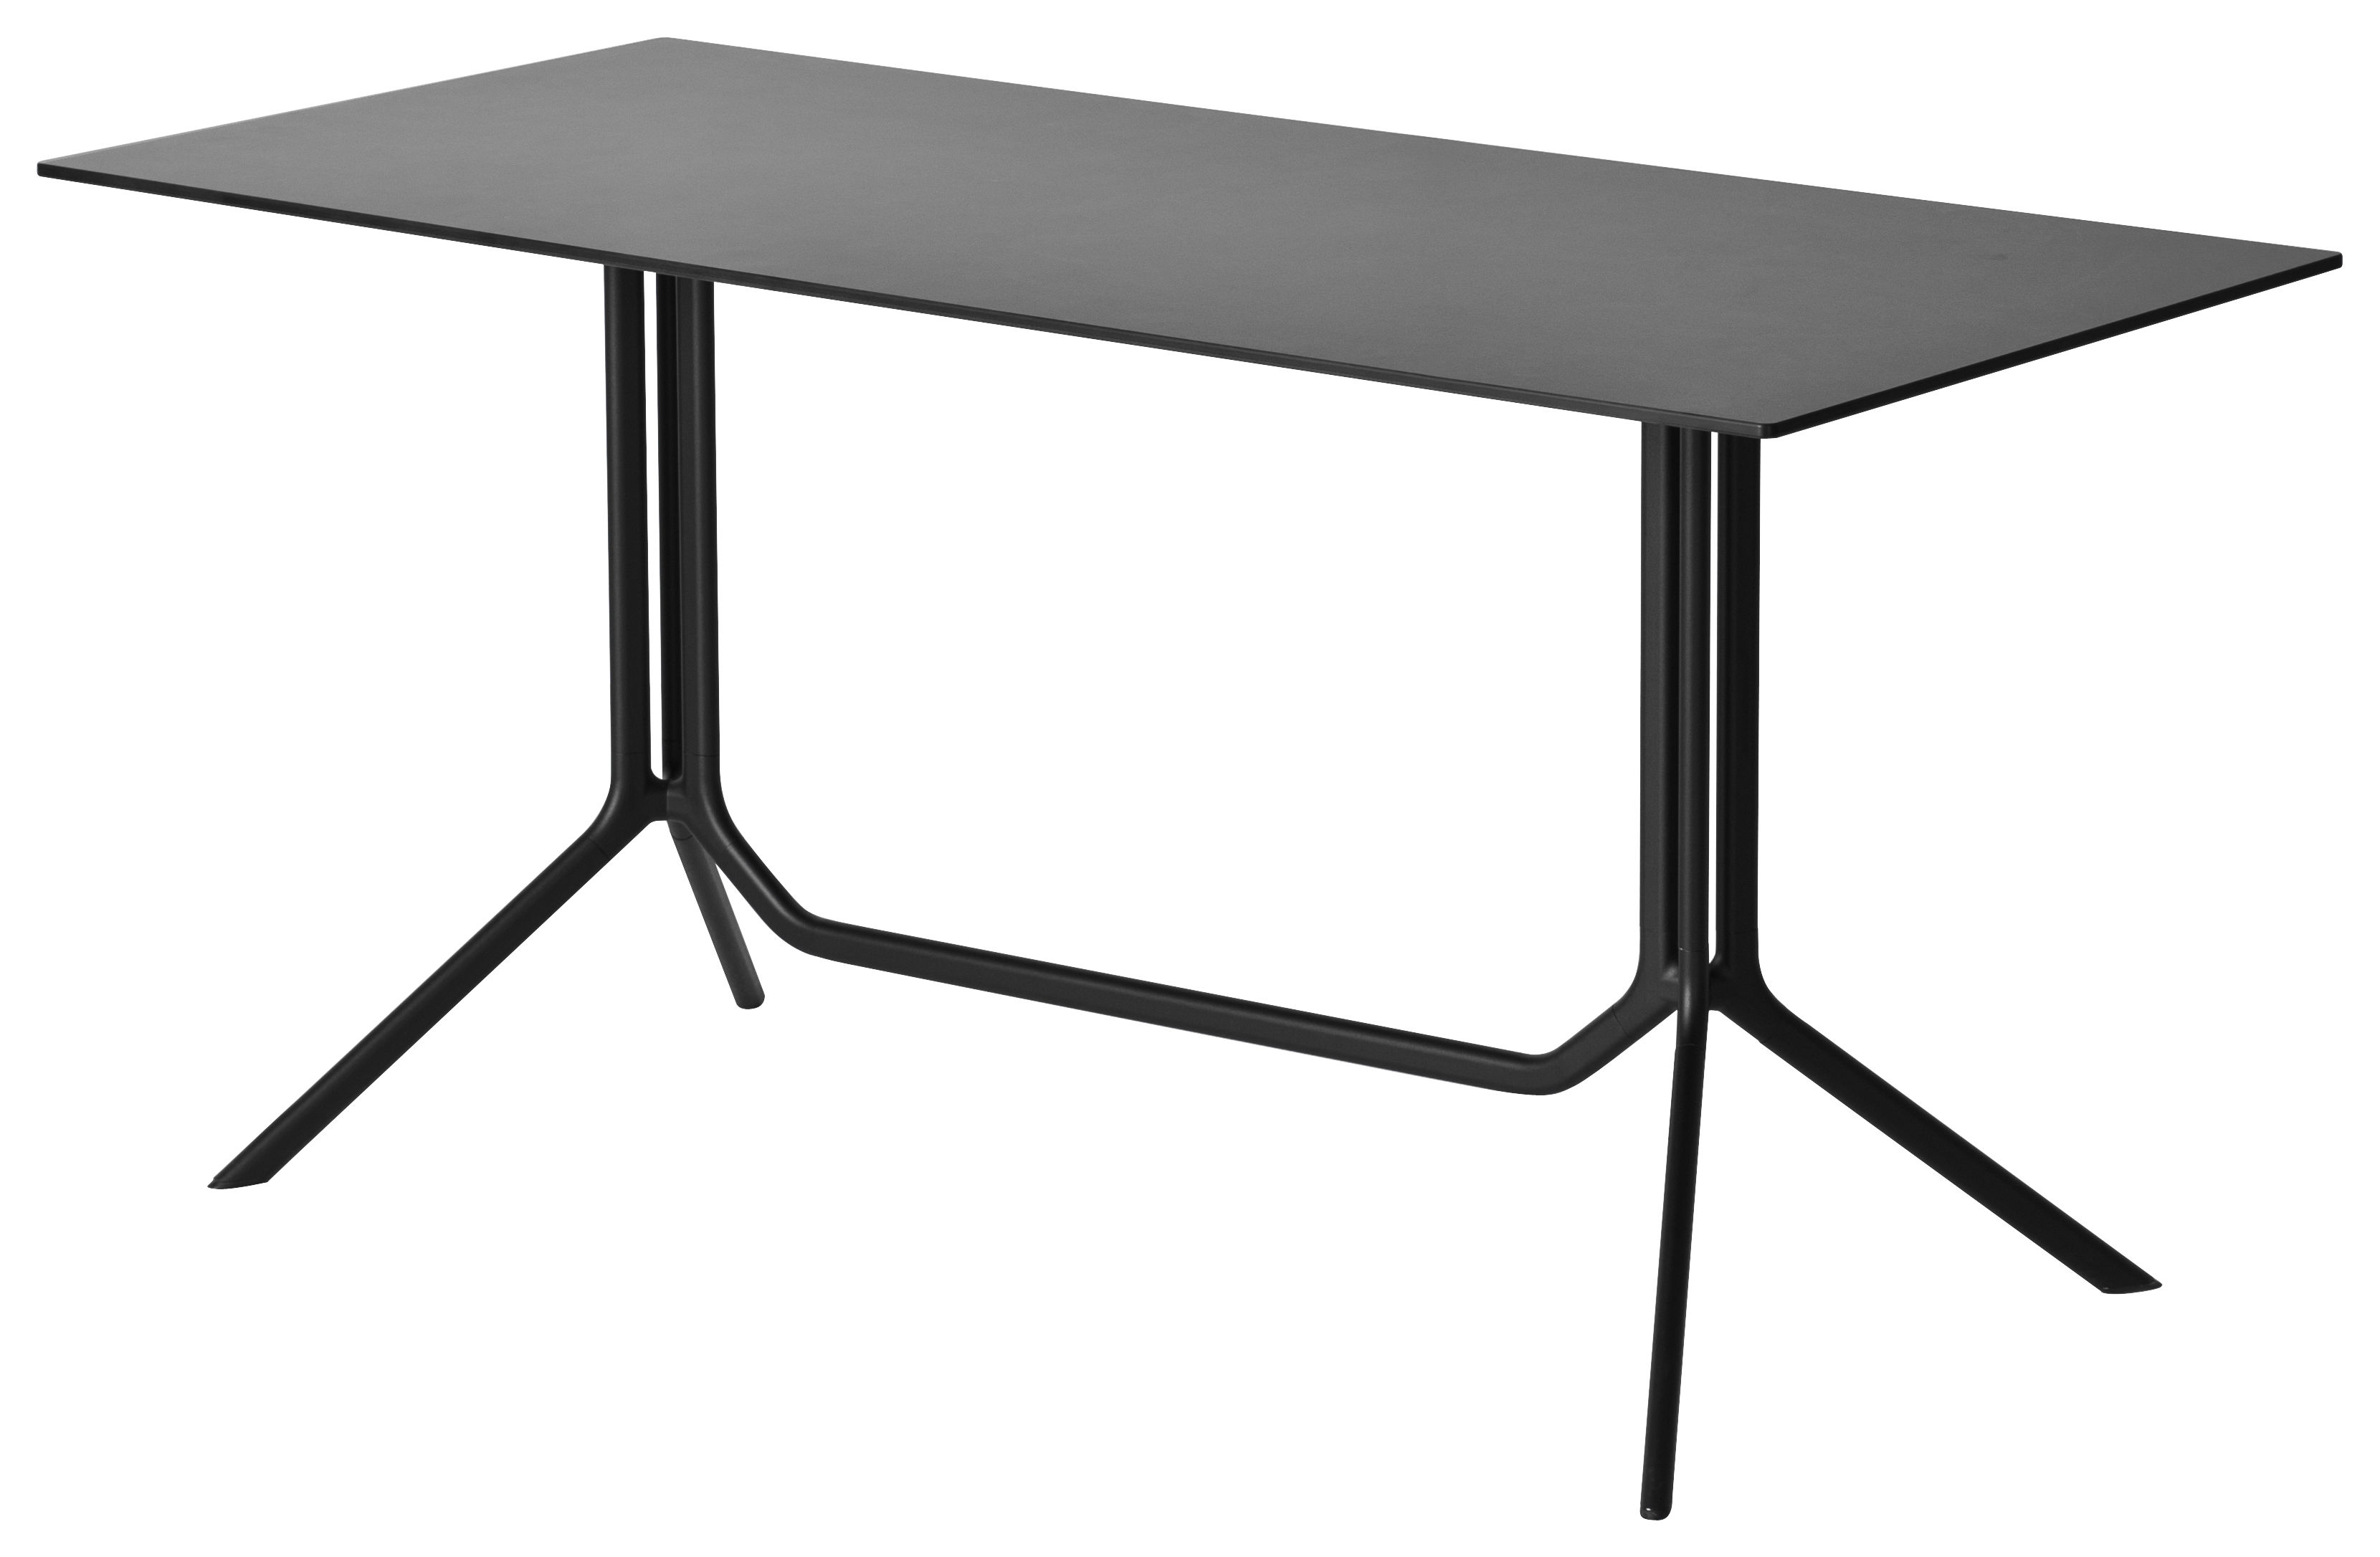 poule double foldable table 120 x 60 cm foldable top black laminated by kristalia. Black Bedroom Furniture Sets. Home Design Ideas